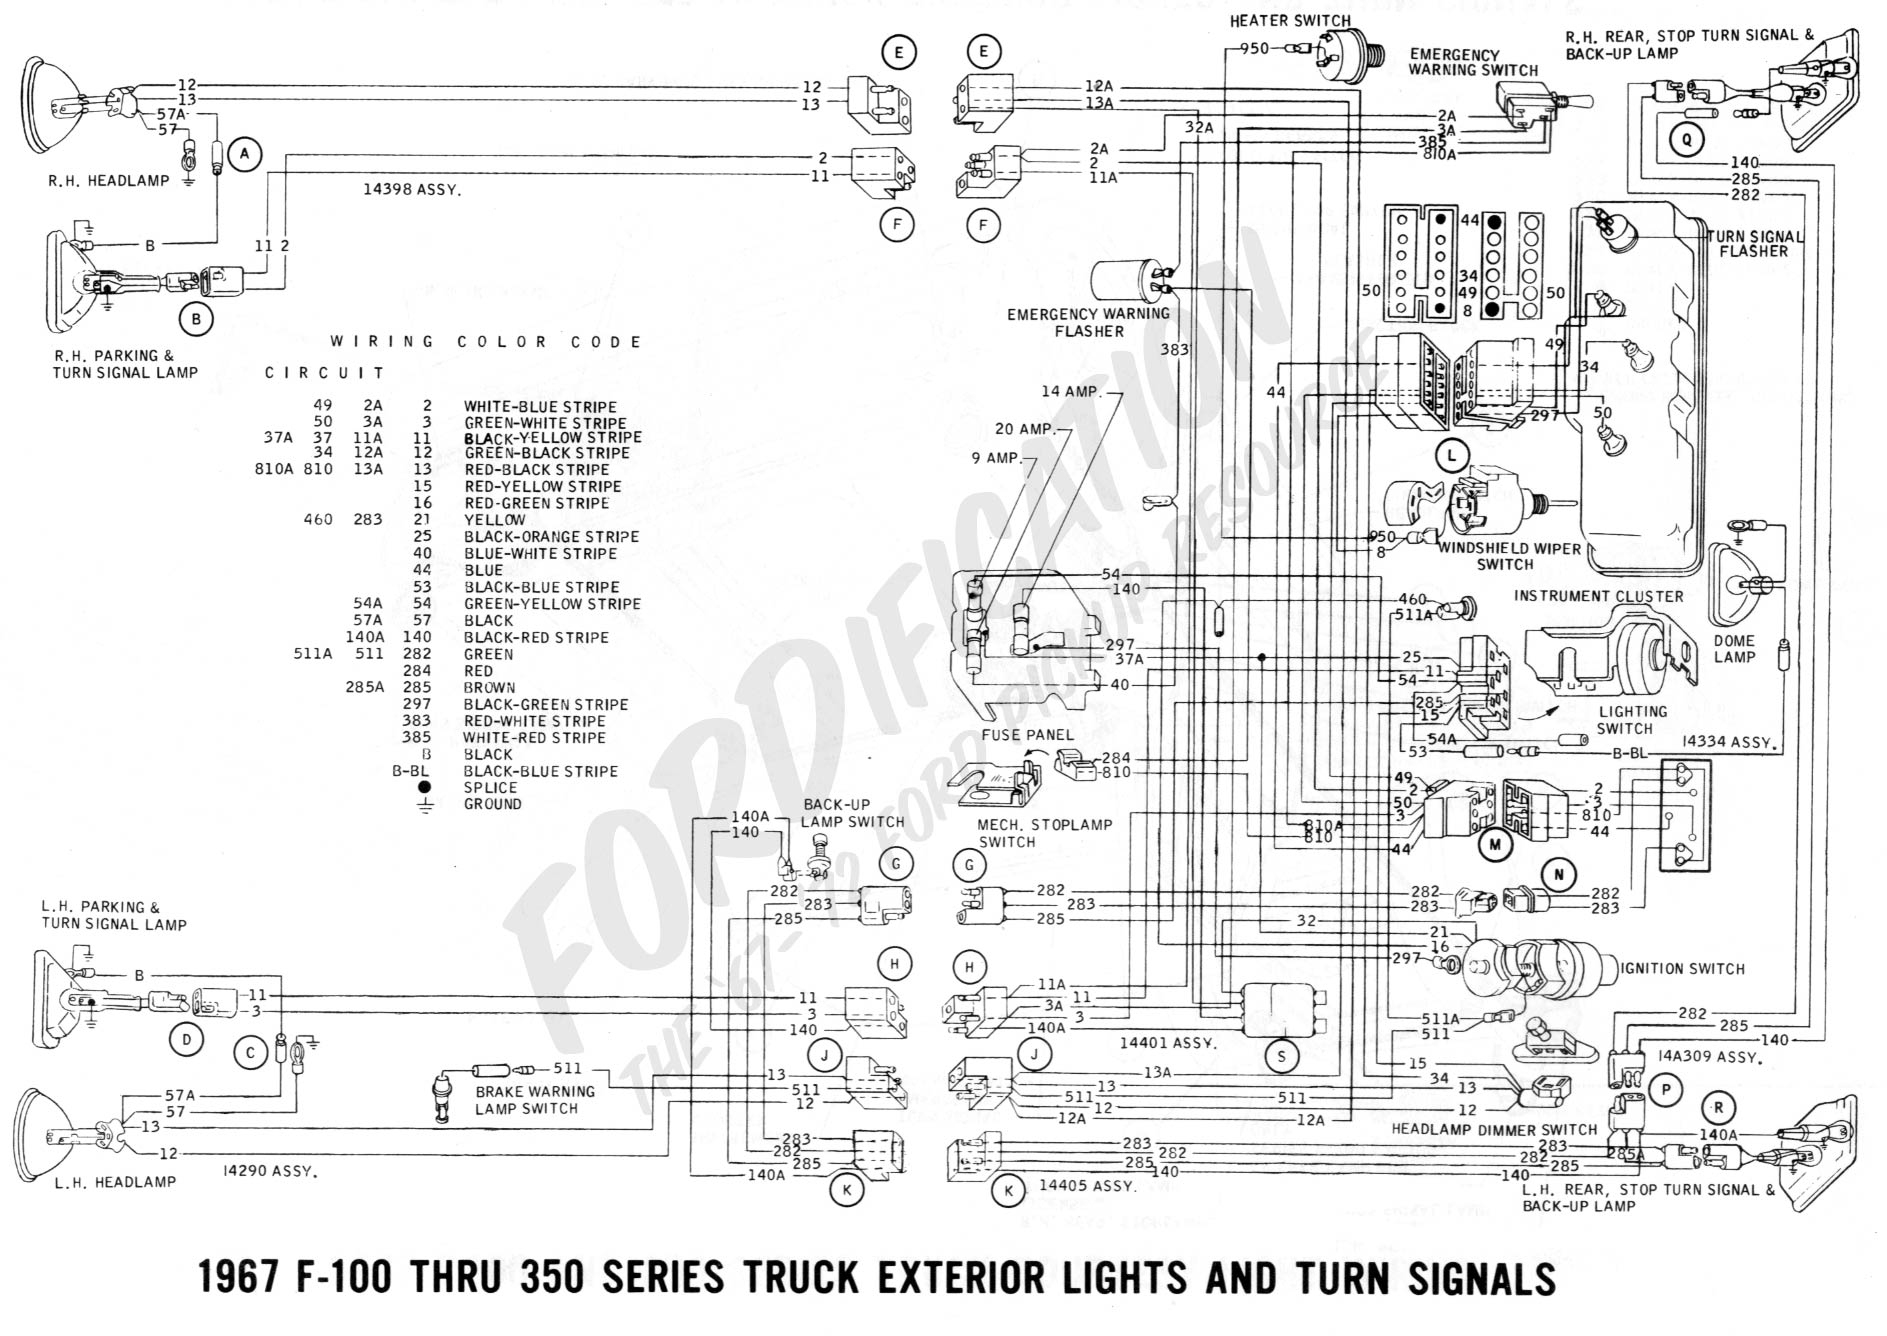 1970 Ford Truck Wiring Diagrams | Wiring Diagram - Ford F150 Trailer Wiring Harness Diagram